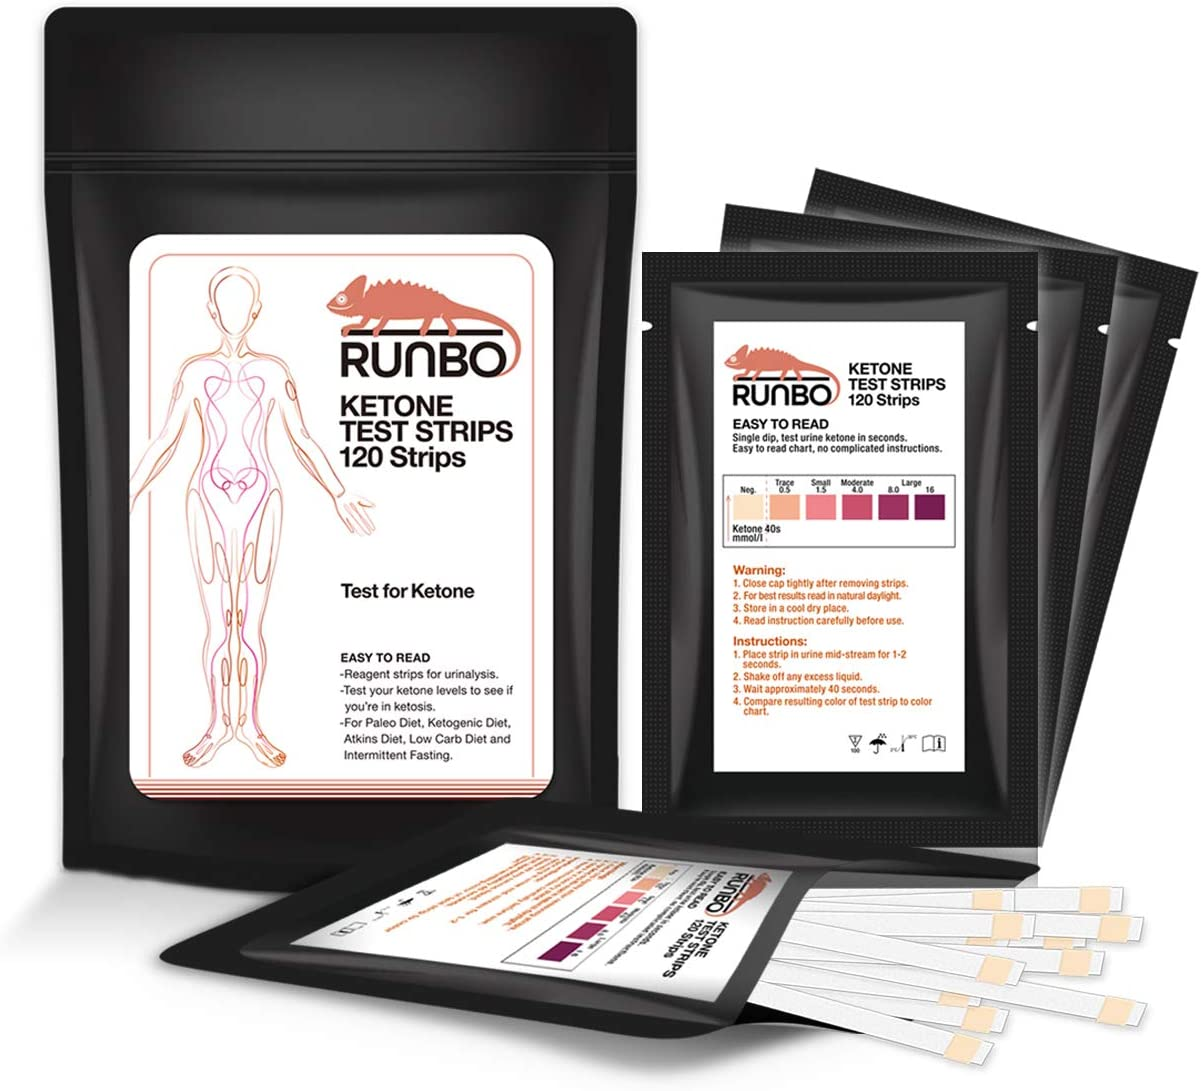 RUNBO Ketone Test Strips 120 Counts in 3 Bags. Accurate and Easy for Urine Keto Level Test. Perfect Test Strips if You are on Low Carb, Paleo, Ketogenic Dieters. Easy to Carry to Everywhere.: Health & Personal Care